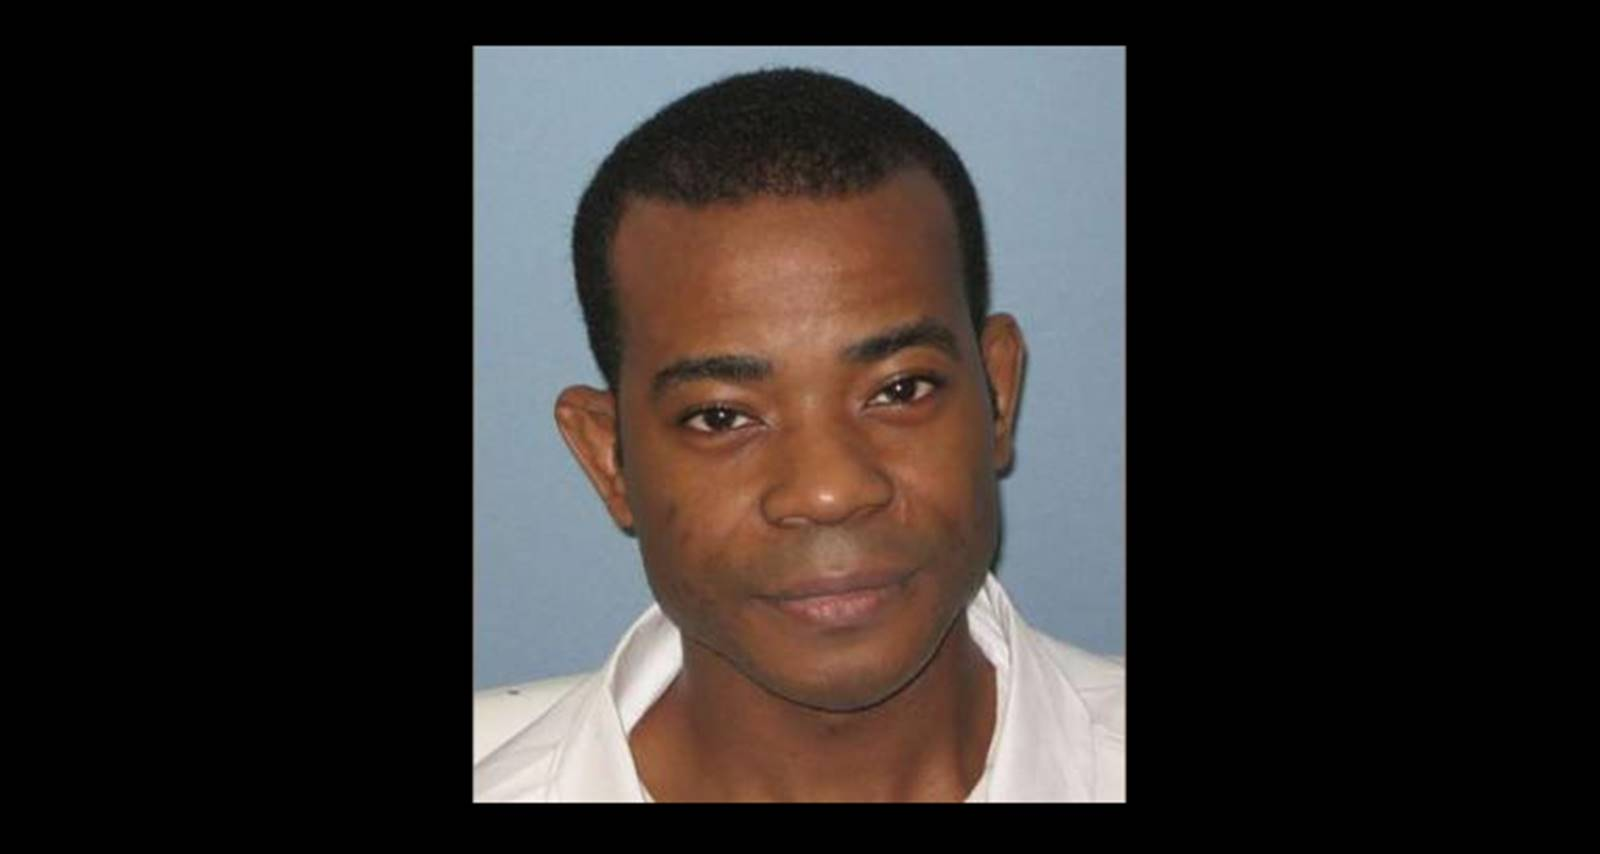 Nathaniel Woods Wiki, Age, Death, Family, Case, and Complete Story of the Alabama Convict Executed For 3 Officer Killings